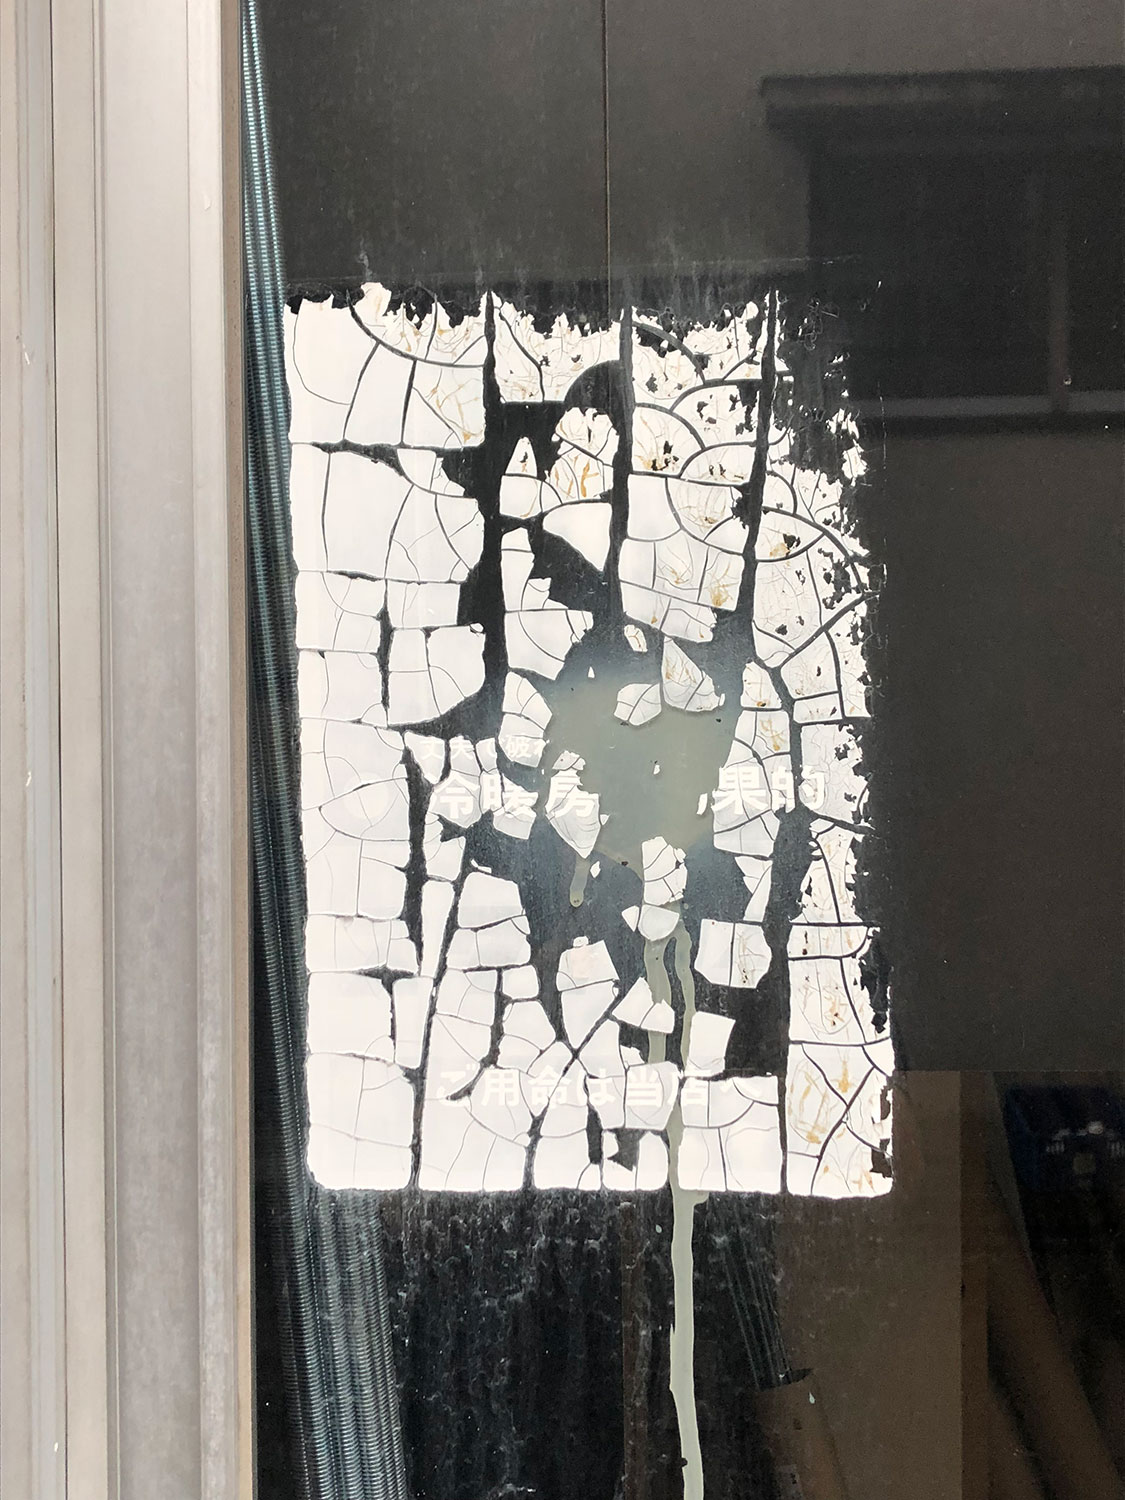 Map of the Cracked-city《ひびわれ町市街図》